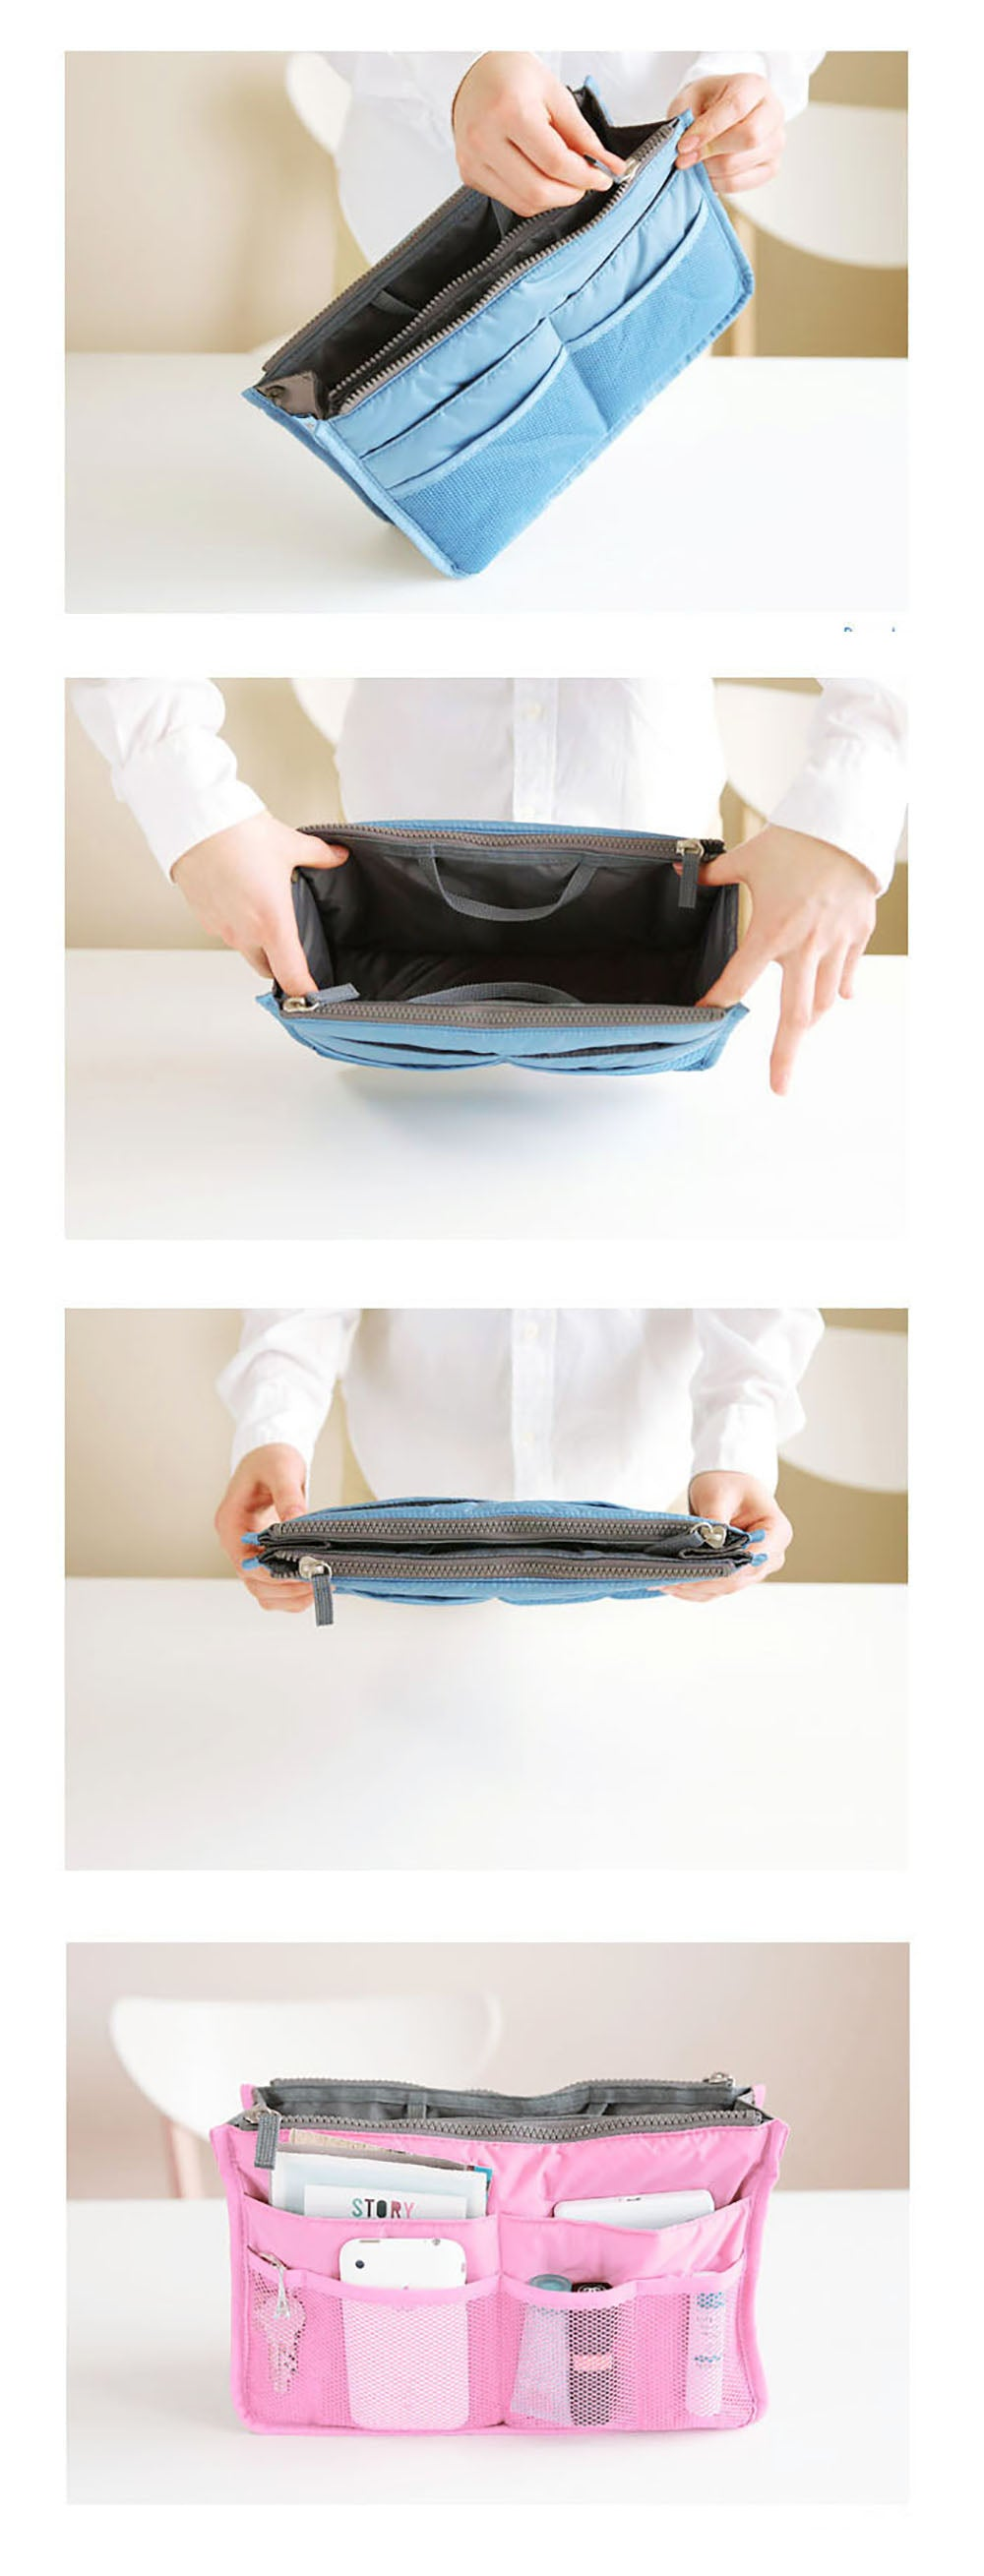 Travel Cosmetic Organizer Bag - Detail